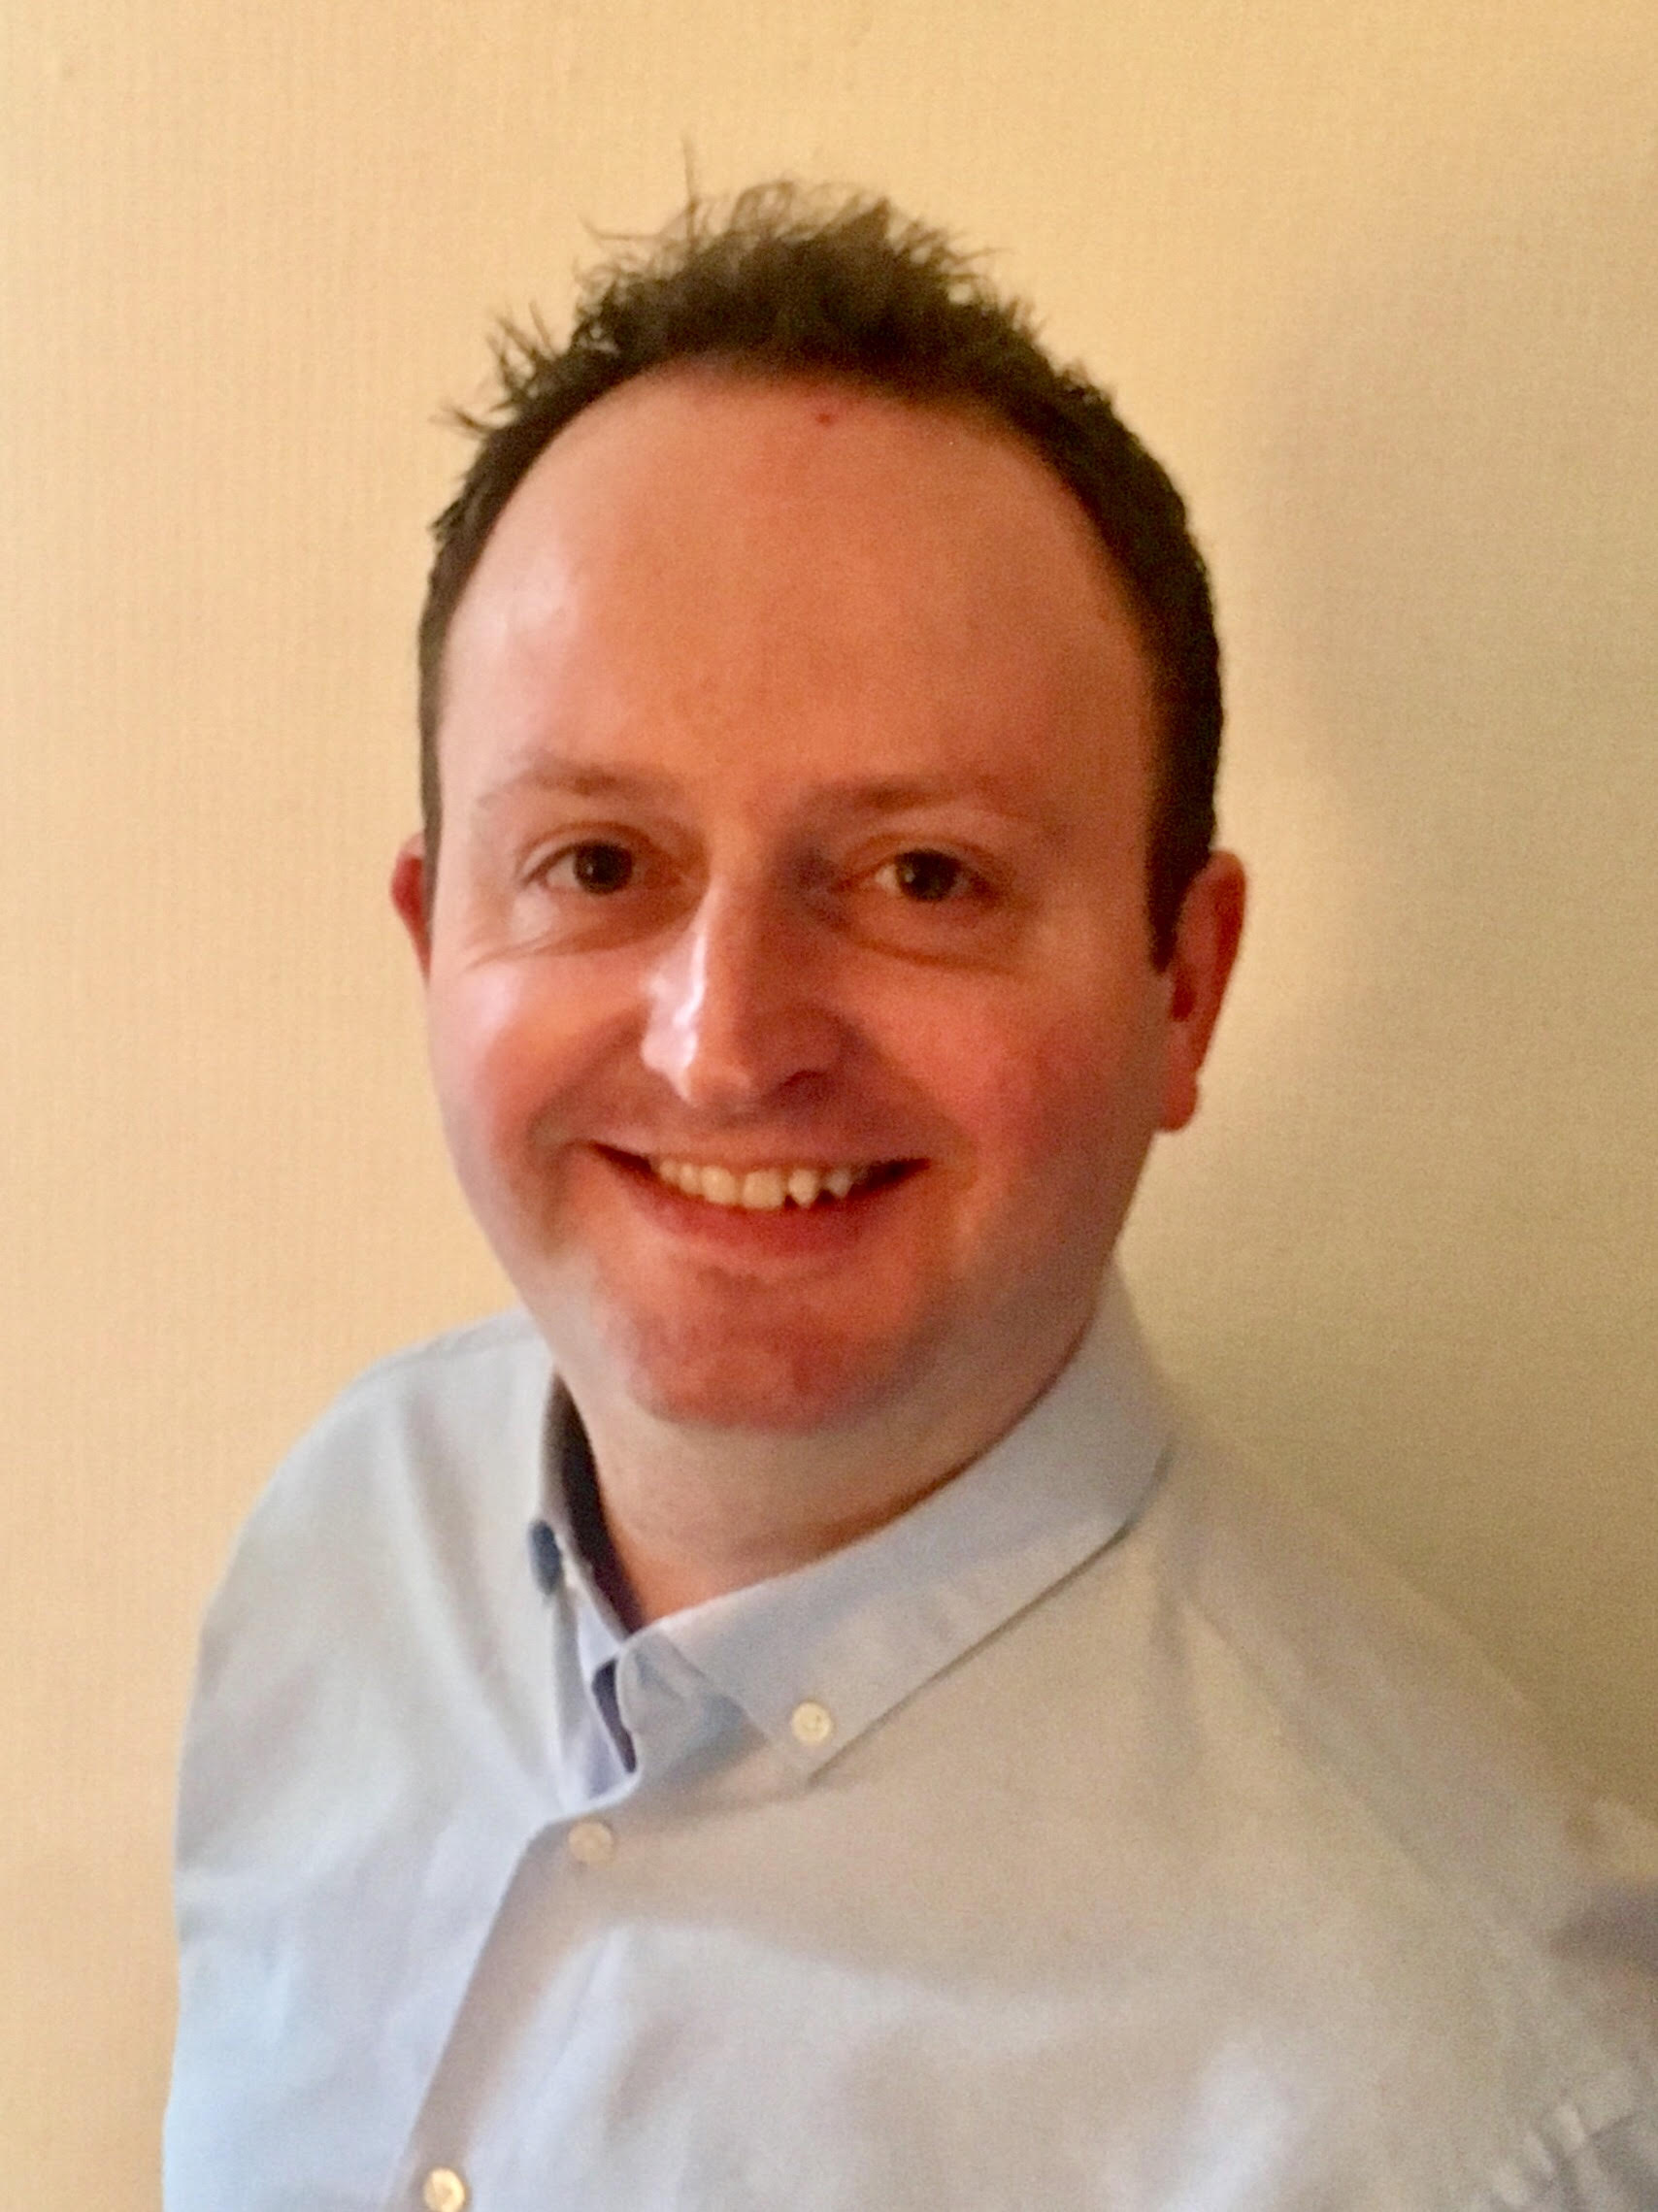 Headshot of Andrew Garrad smiling. He is wearing a blue button up shirt.